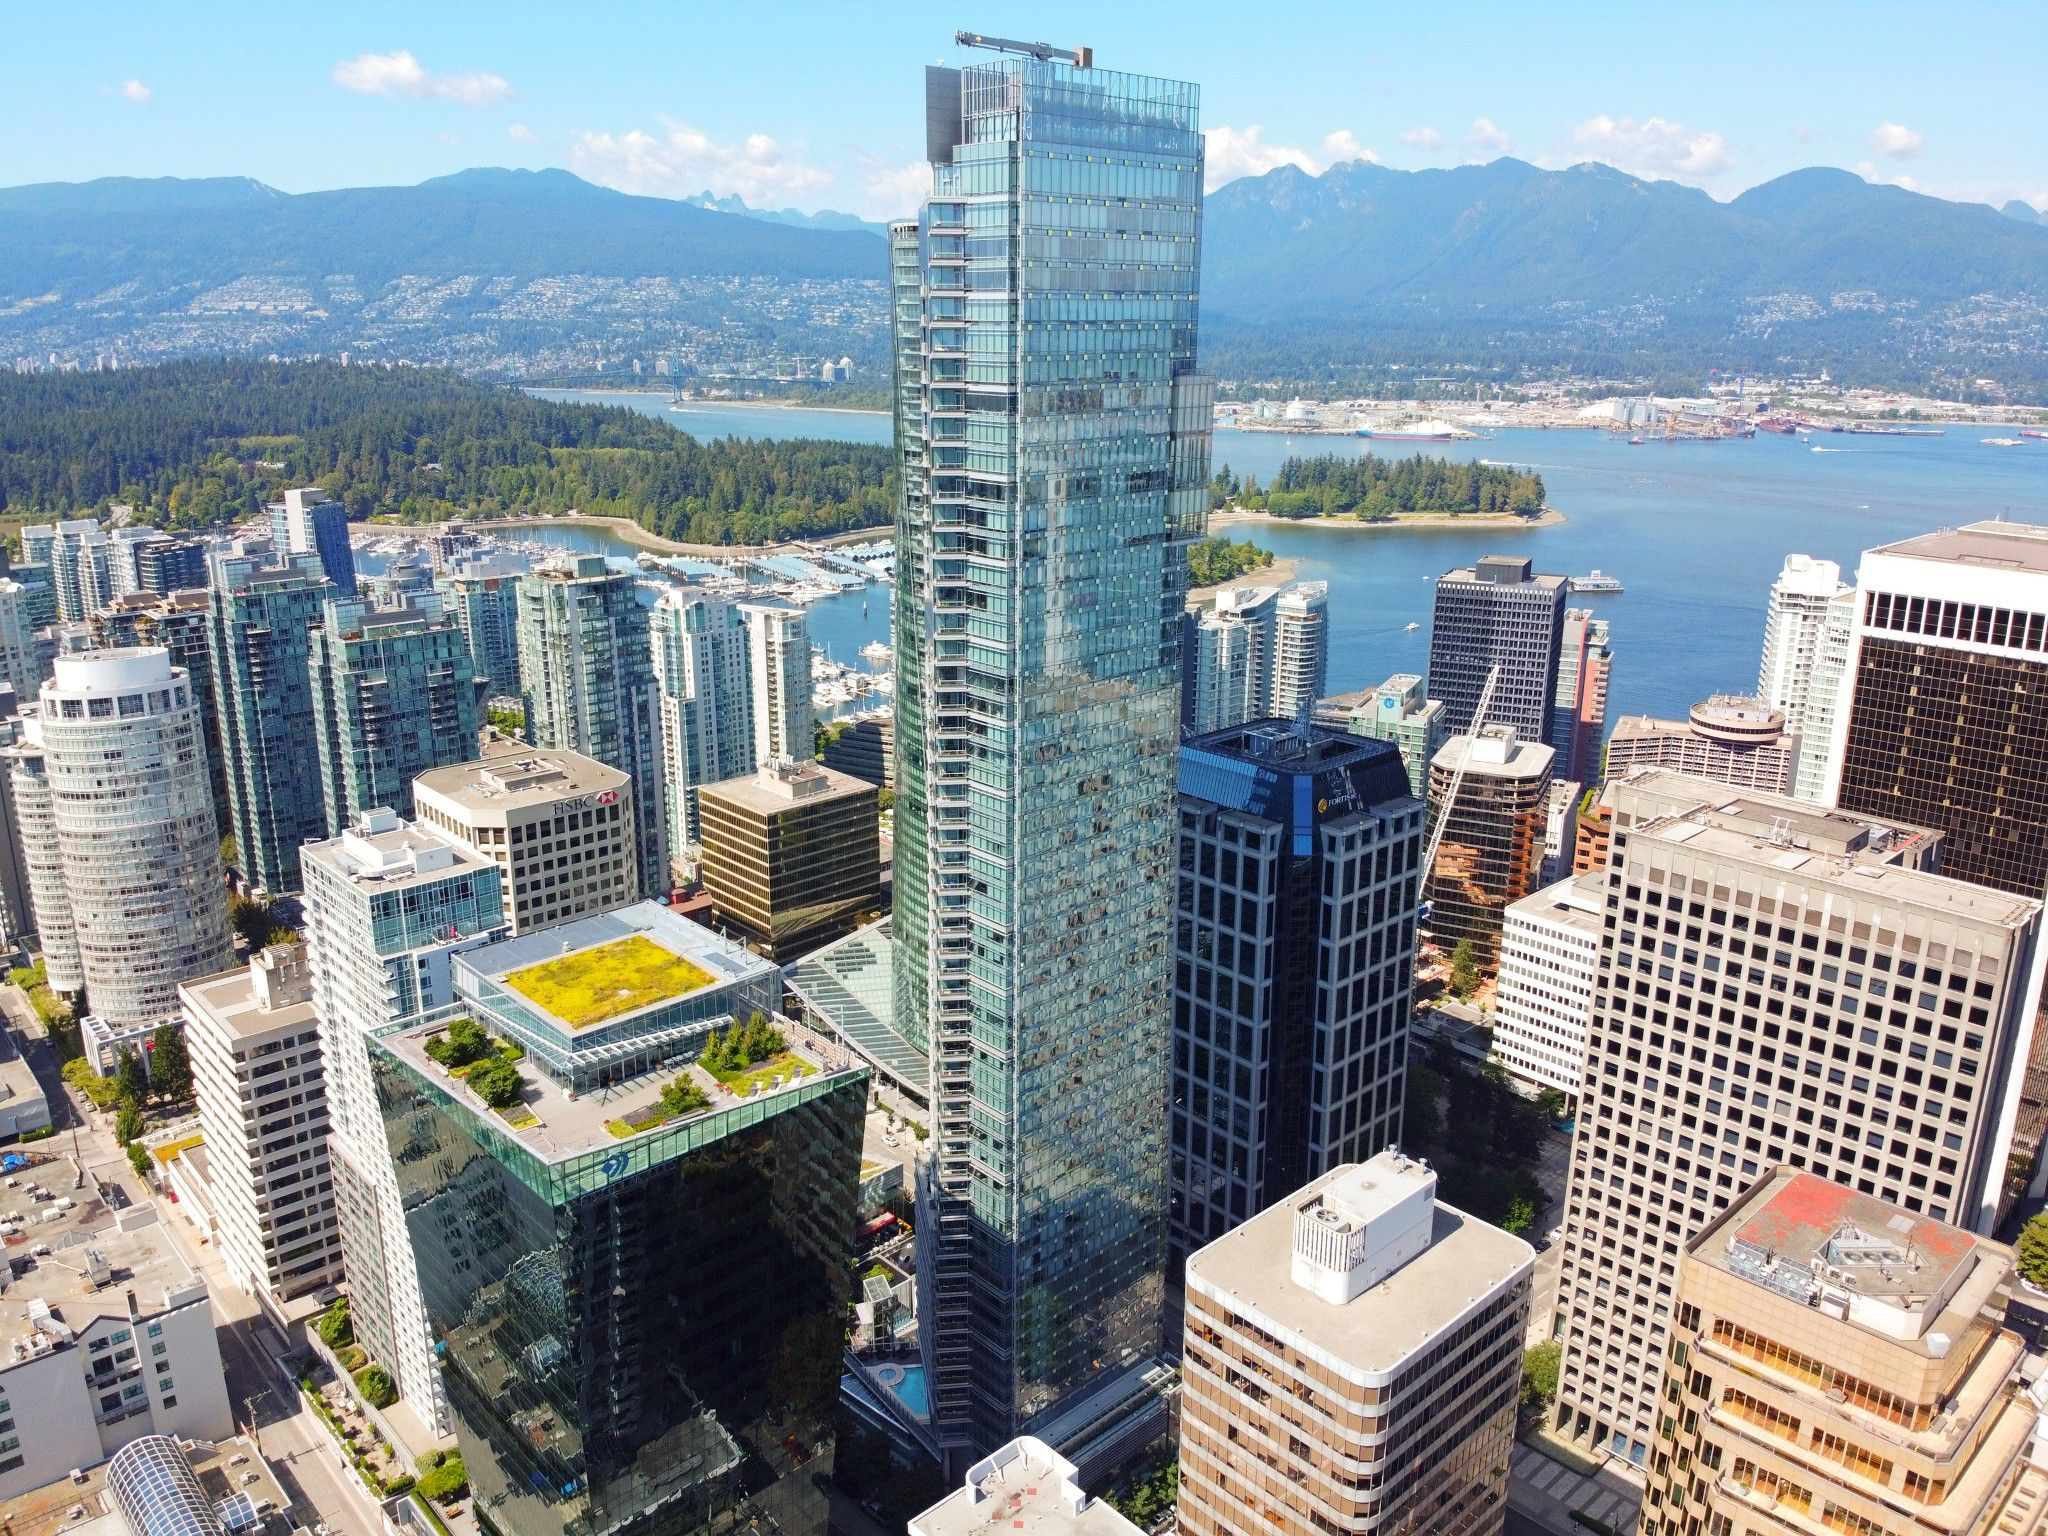 """Main Photo: 2606 1111 ALBERNI Street in Vancouver: West End VW Condo for sale in """"Shangri-La Vancouver"""" (Vancouver West)  : MLS®# R2478466"""